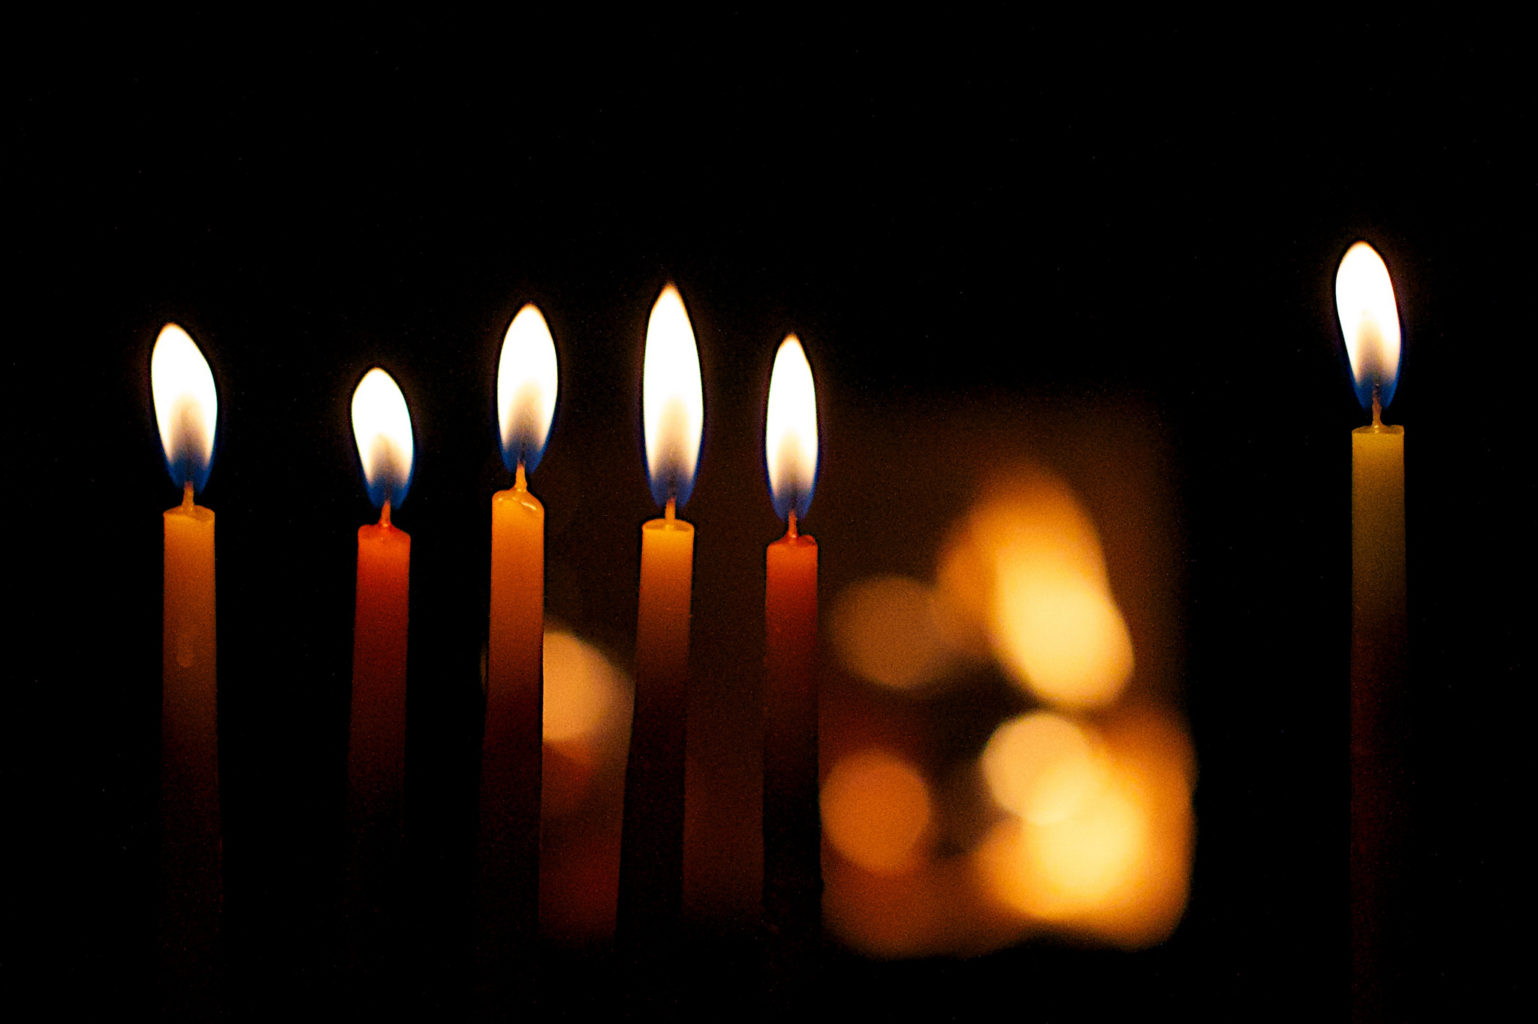 candle light by alan levine on flickr public domain - Image